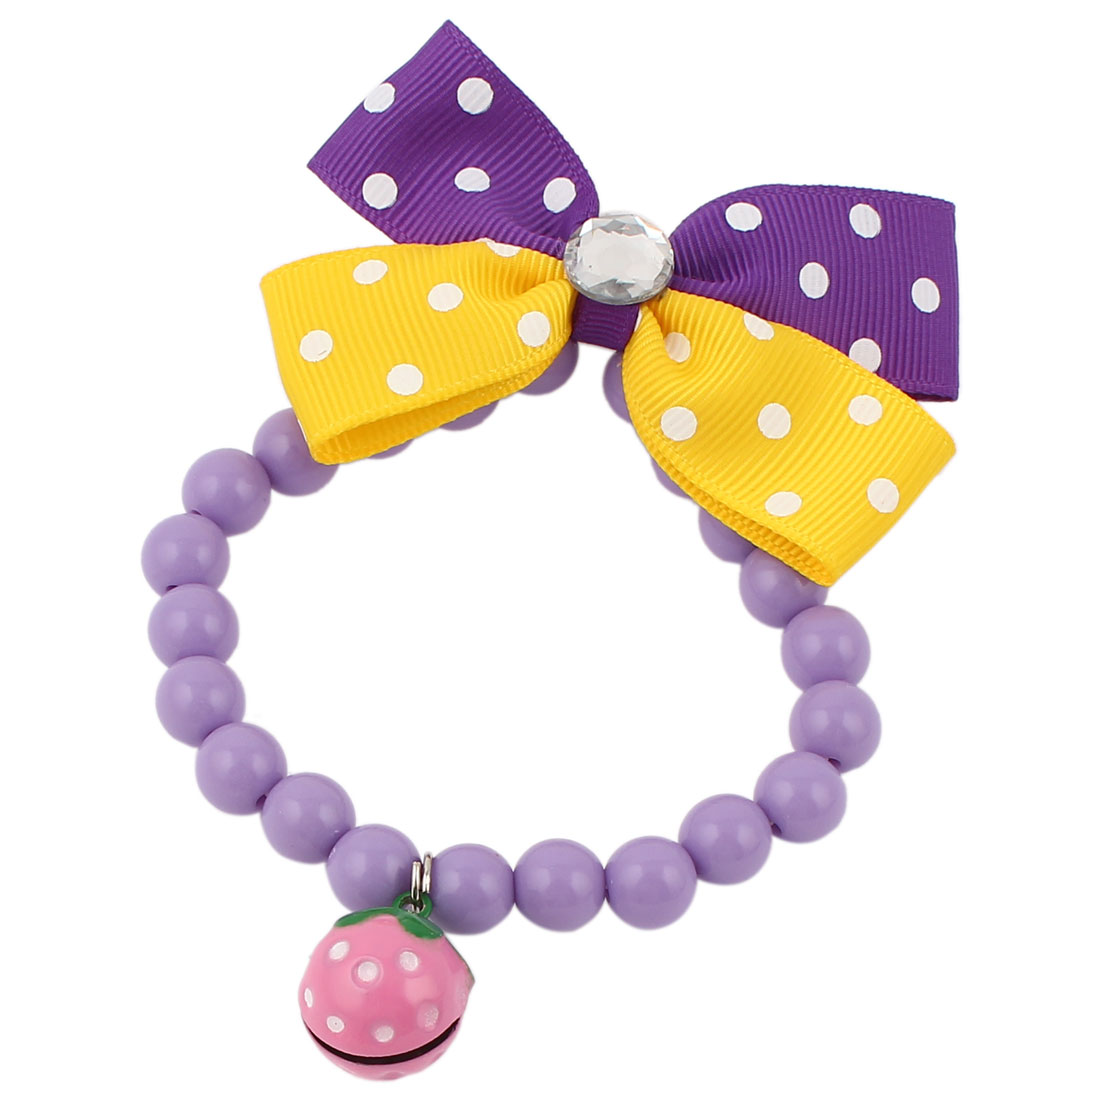 Metal Bell Pendant Bowtie Accent Pet Dog Plastic Beads Collar Necklace Purple Yellow XS